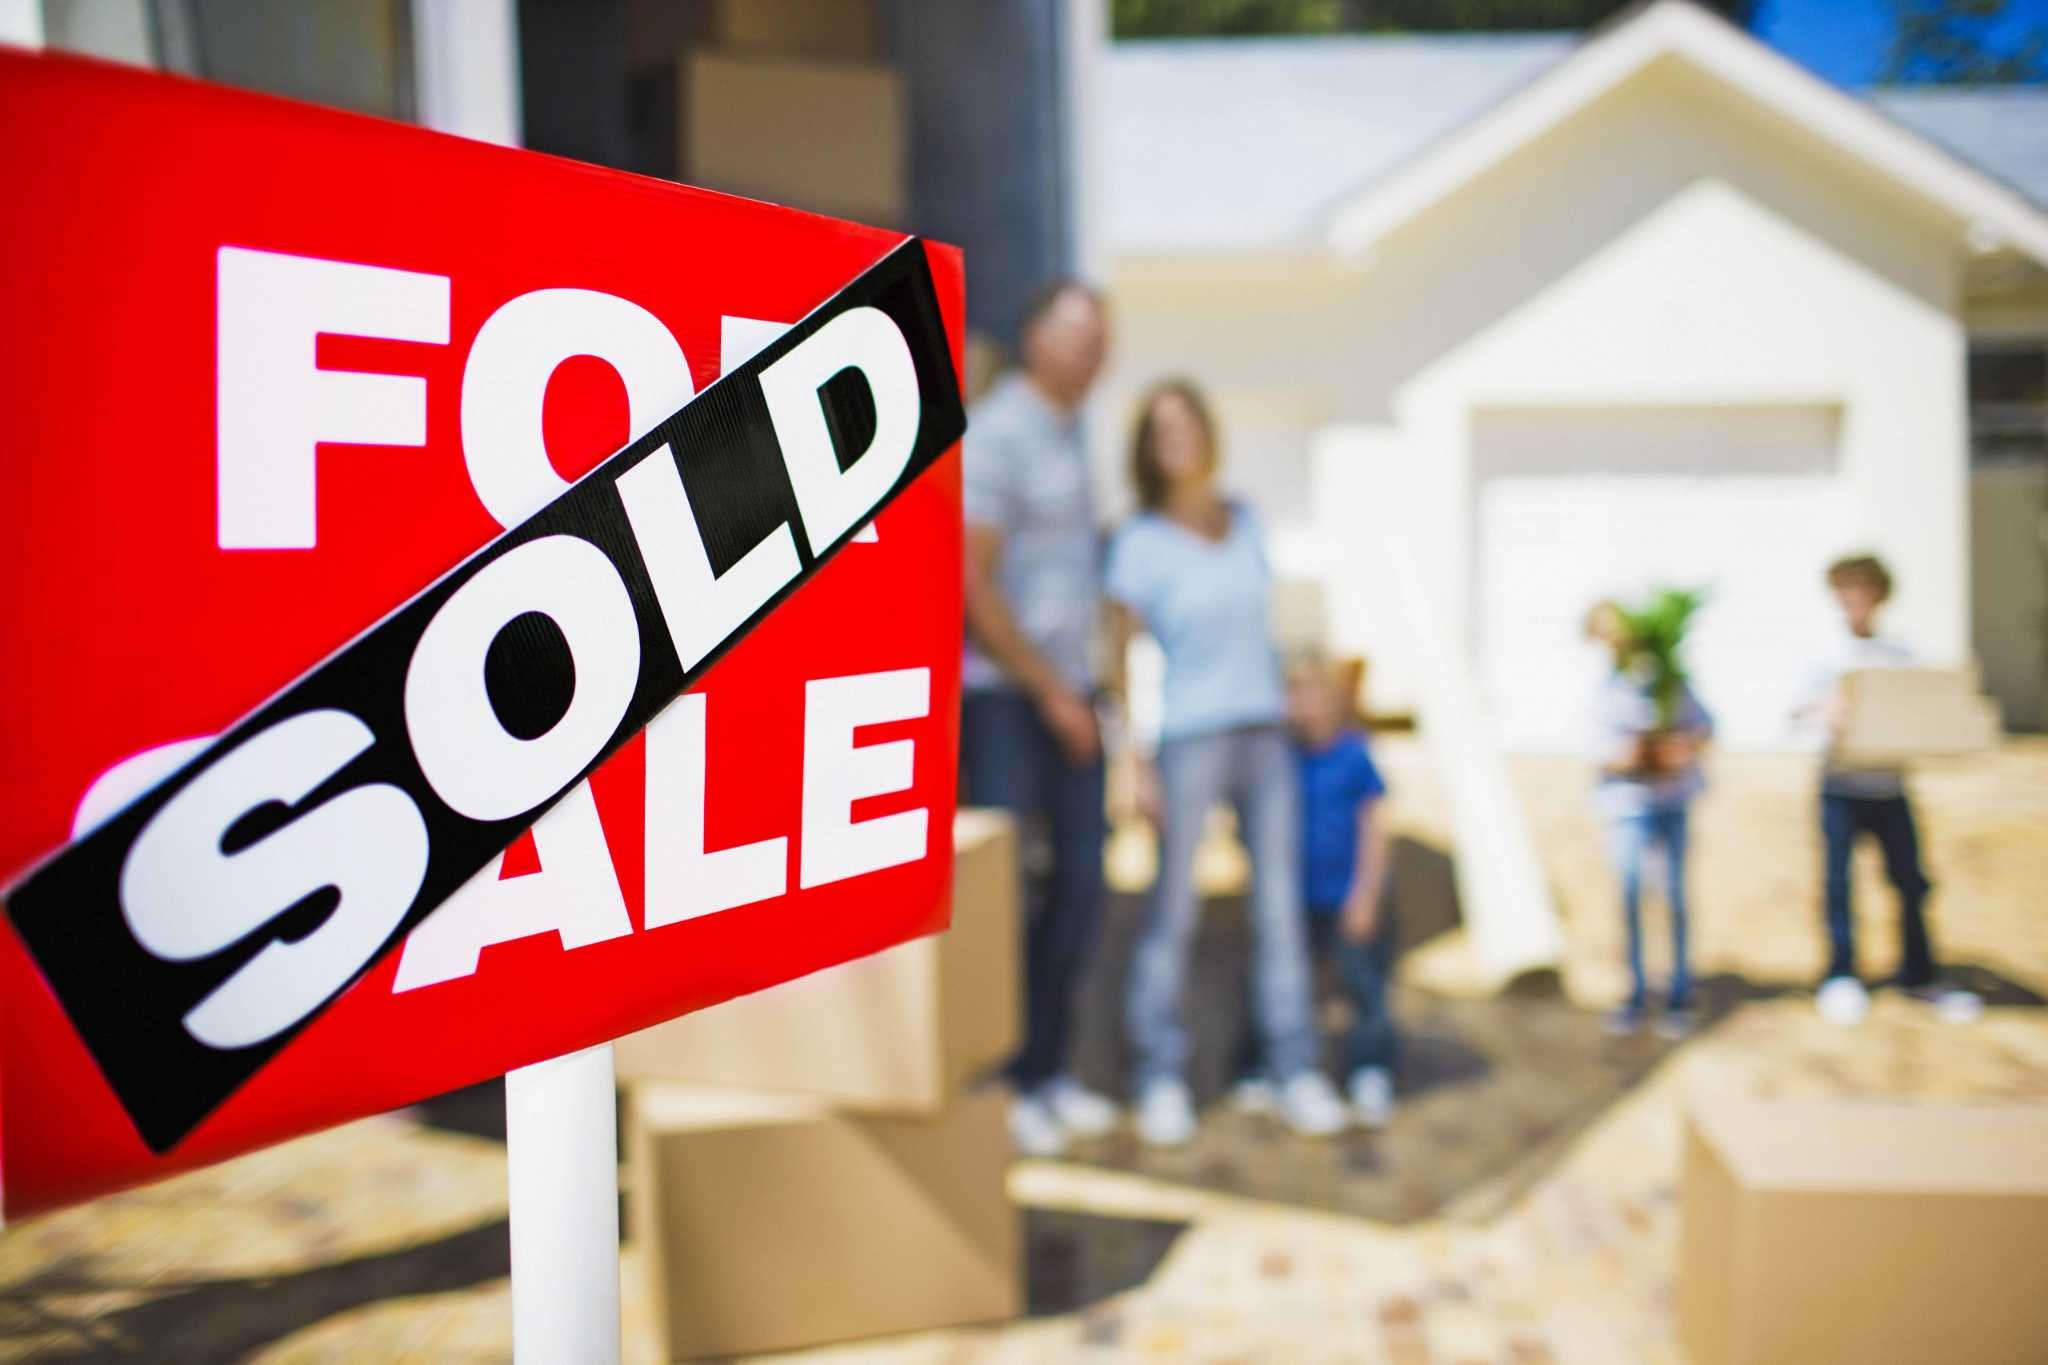 Duo Dickinson: When it comes to real estate are we in a bubble or a new market?